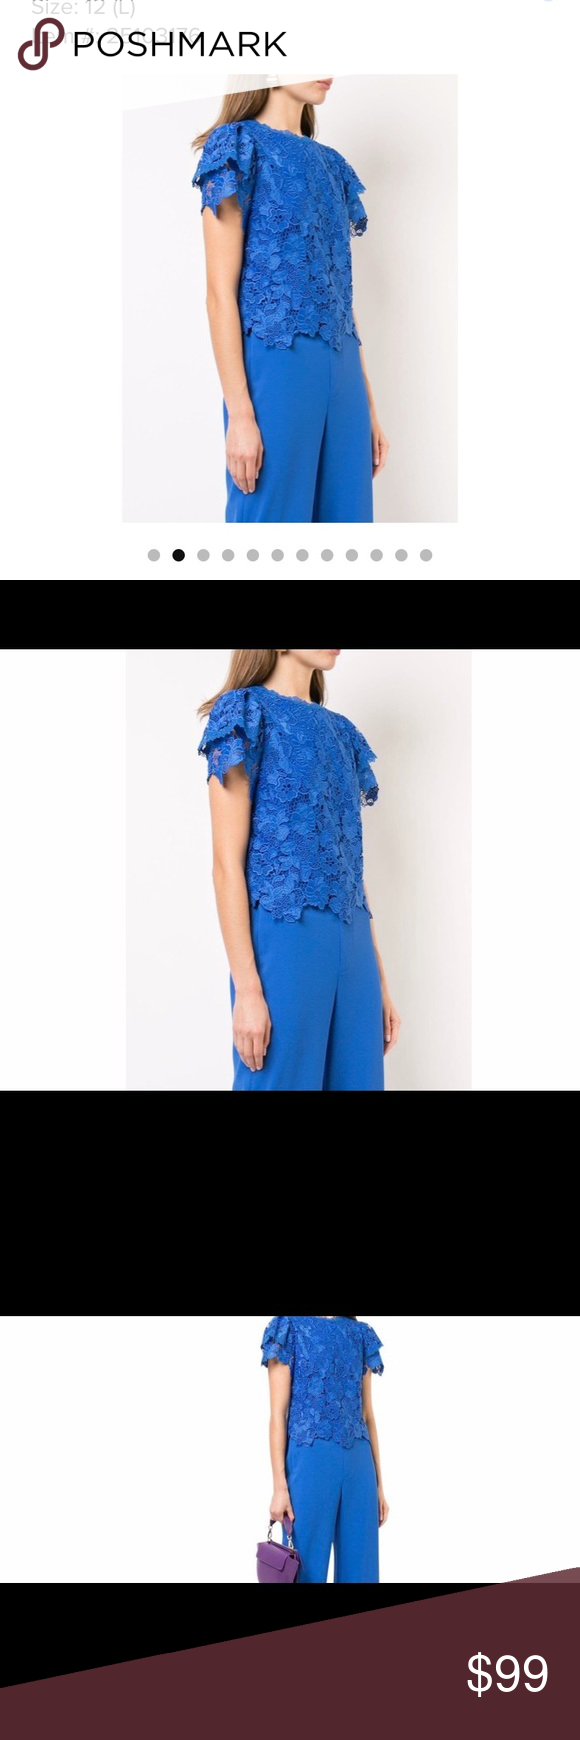 Alice Olivia New Blue Floral Lace Blouse Floral Lace Blouse Lace Blouse Floral Lace Tops